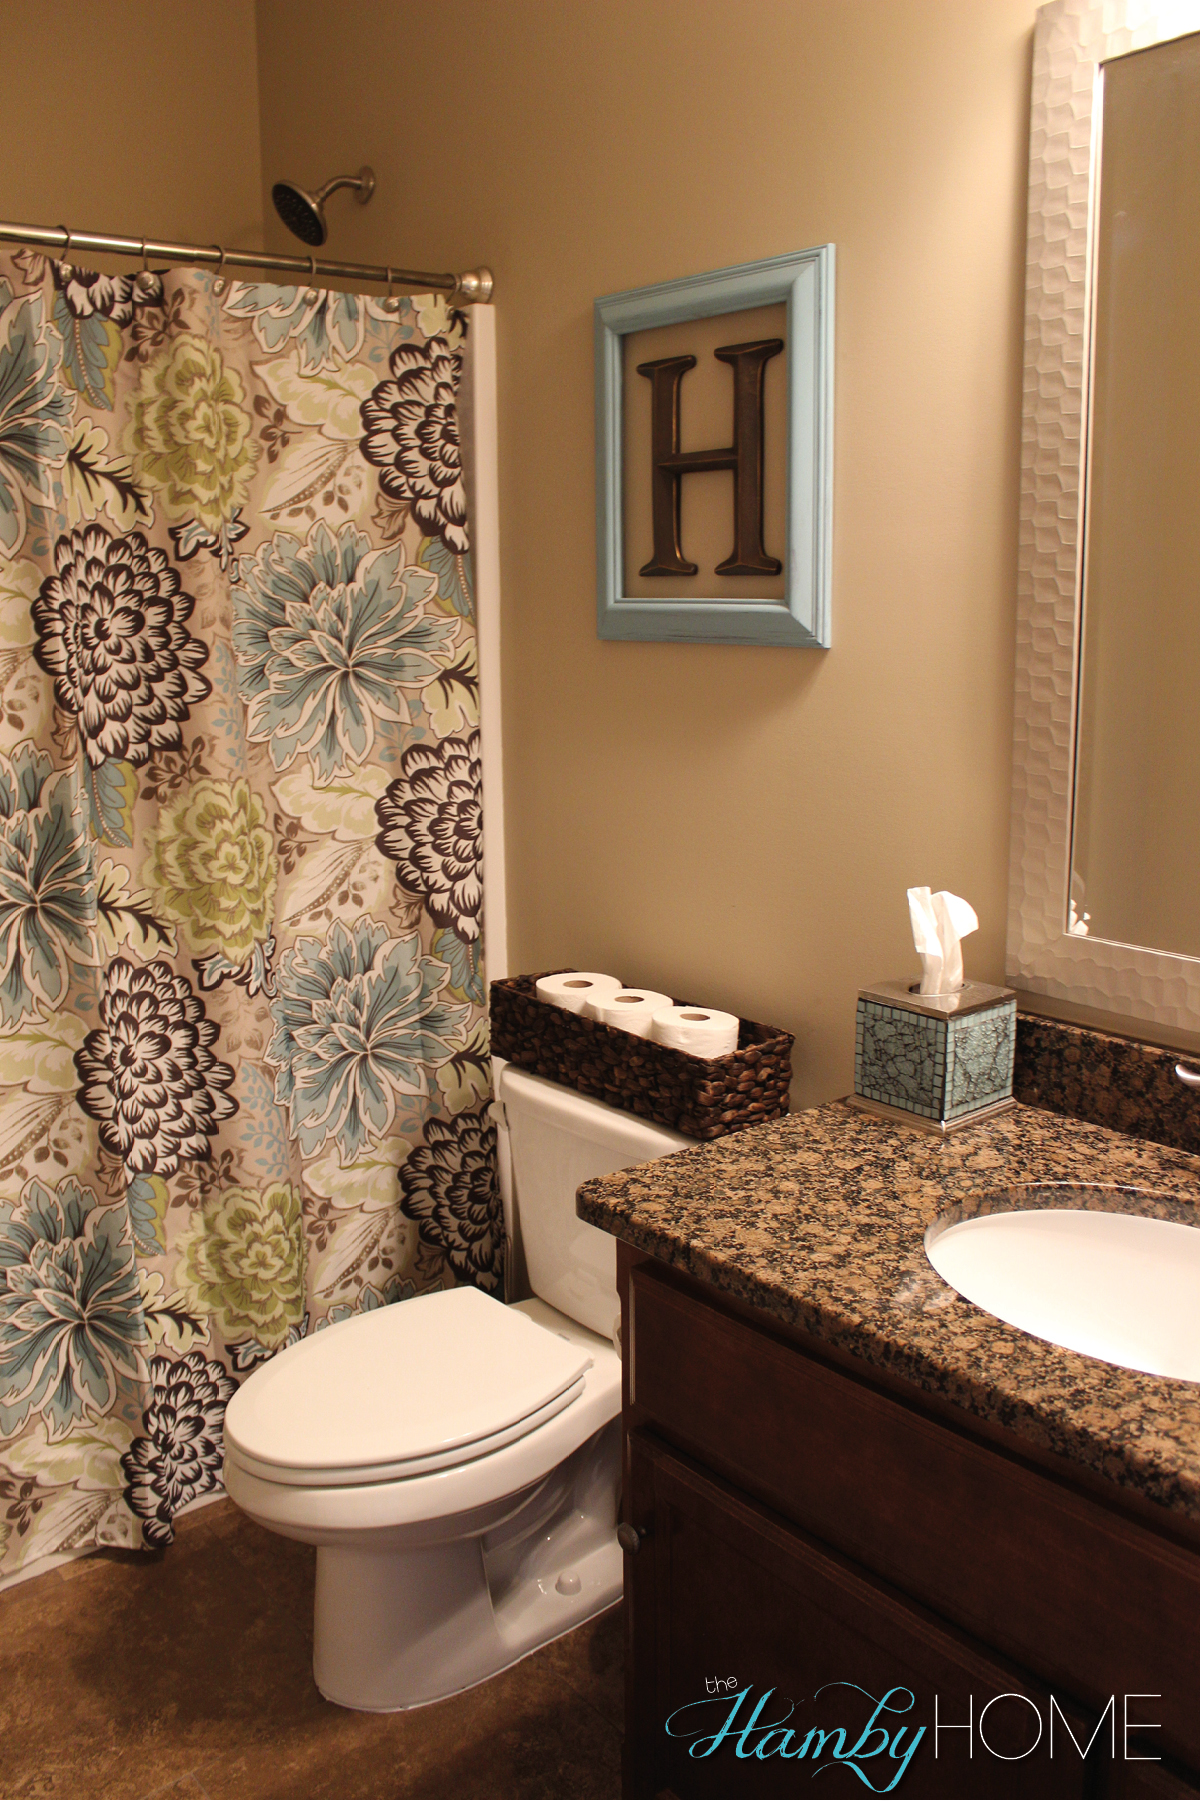 Tgif house tour guest bathroom the hamby home for Washroom decoration ideas